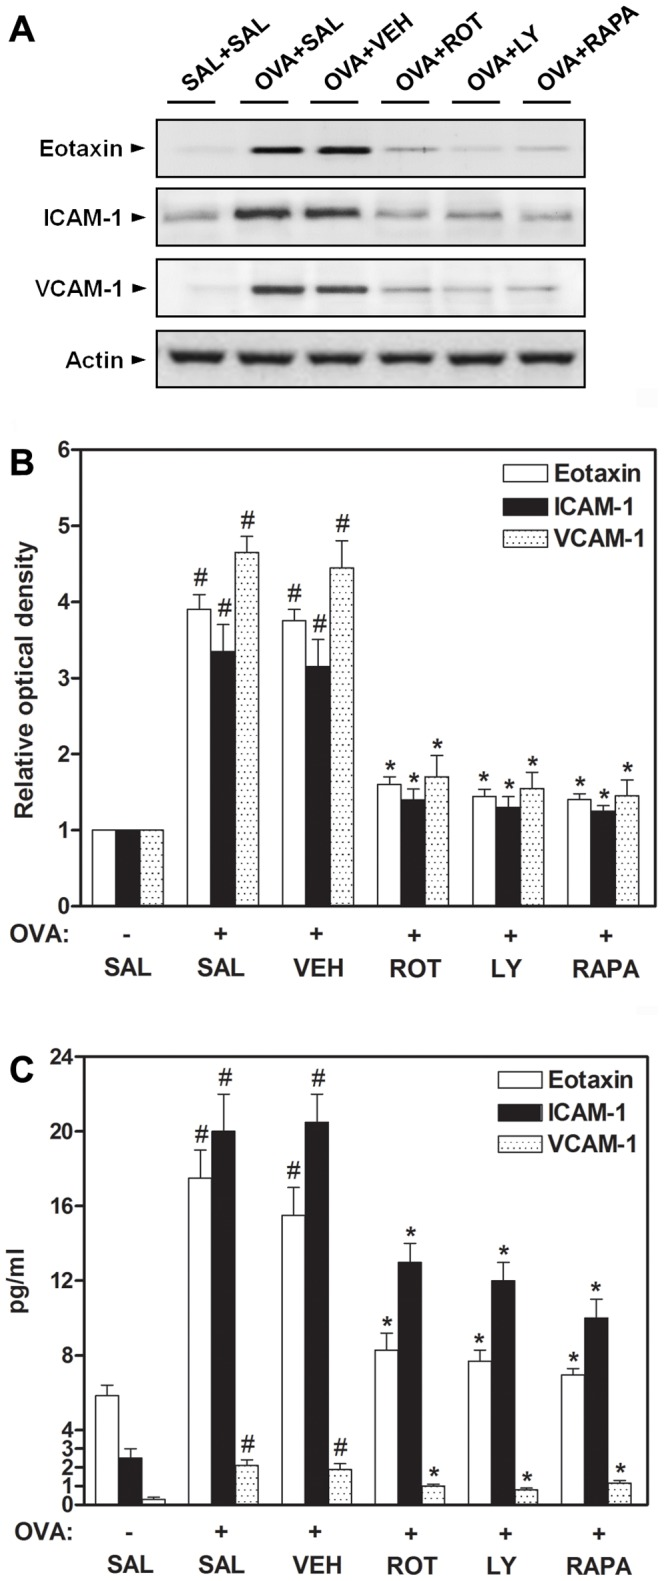 Effect of rottlerin, LY294002, or rapamycin on eotaxin, ICAM-1, and VCAM-1 levels in OVA-inhaled mice. (A) Western blotting of eotaxin, ICAM-1, and VCAM-1 in lung tissues. (B) Densitometric analyses are presented as the relative ratio of each molecule to actin. The relative ratio of each molecule in the lung tissues of SAL+SAL mice is arbitrarily presented as 1. (C) The levels of eotaxin, ICAM-1, and VCAM-1 were quantified by ELISA. The protein expression of these adhesion molecules was measured at 48 h after the last challenge in mice. Results from four independent experiments with 5 mice/group are given as mean ± SEM. # p